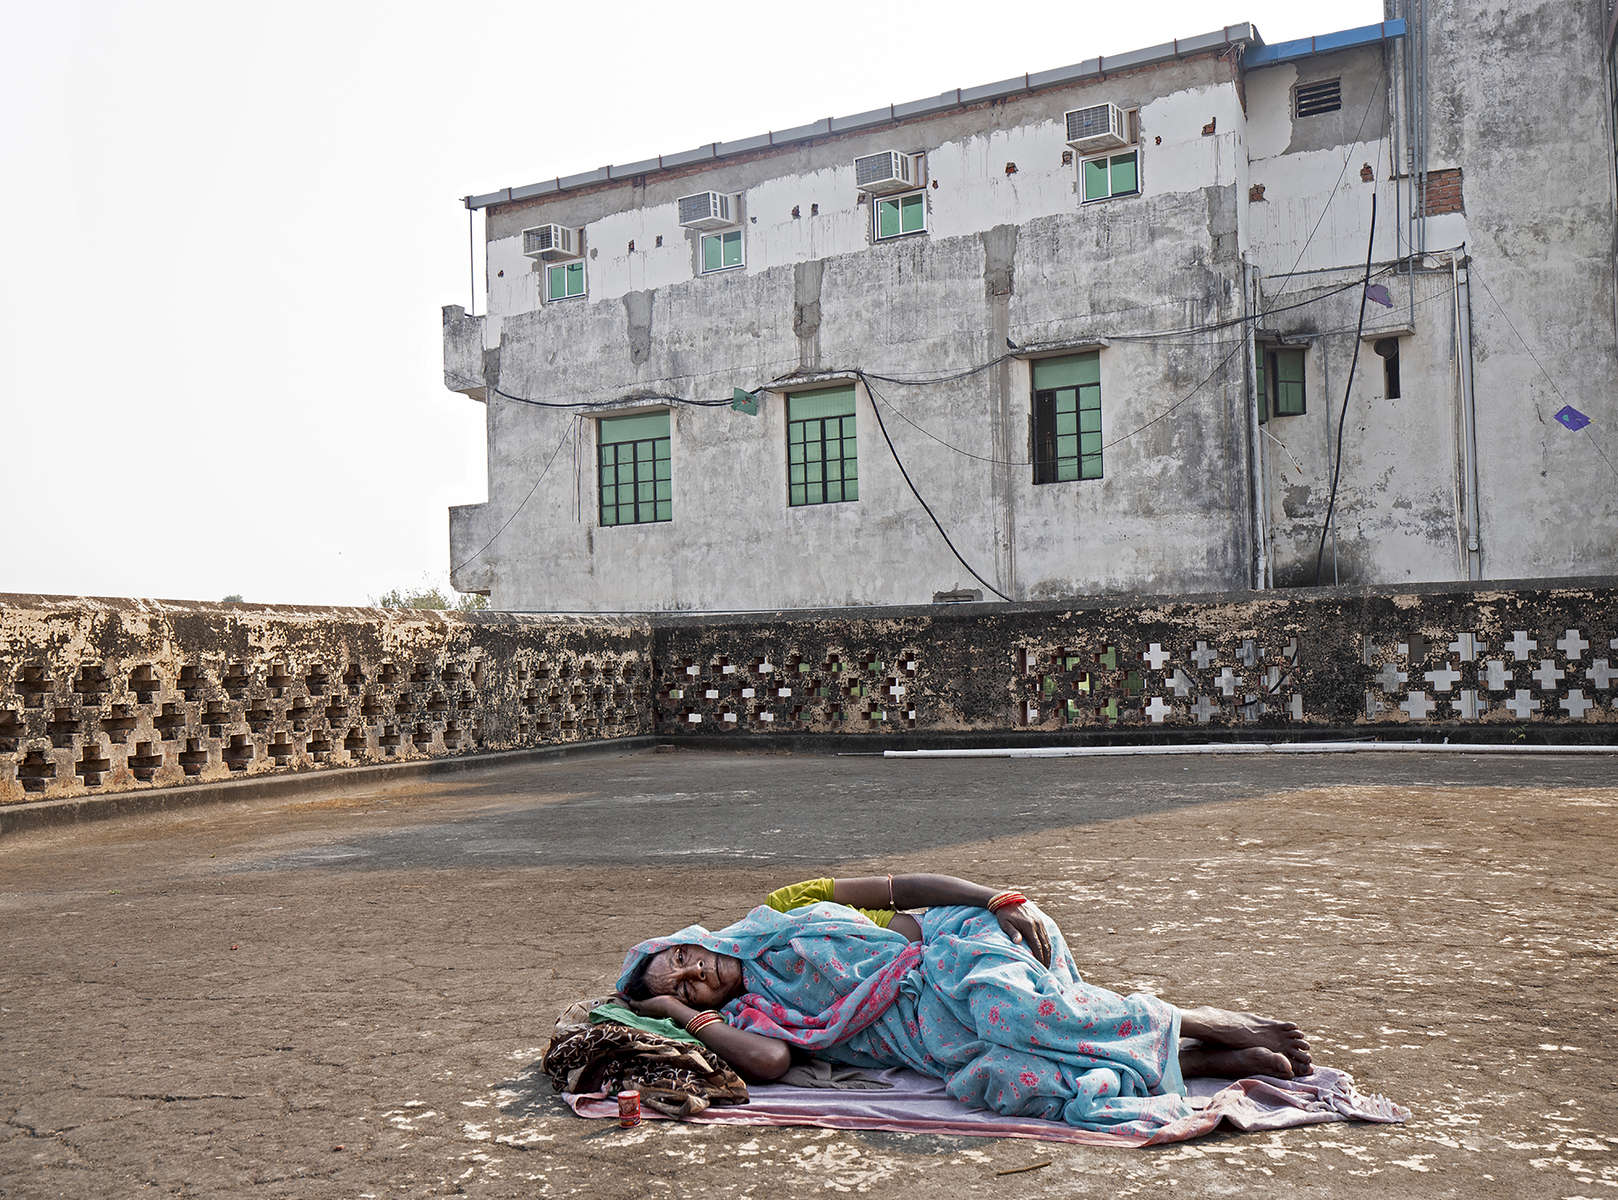 Sonakshi Devi, a widow, lies on the roof of the Durga Kund Help Line ashram in Varanasi, India on January 08, 2019.